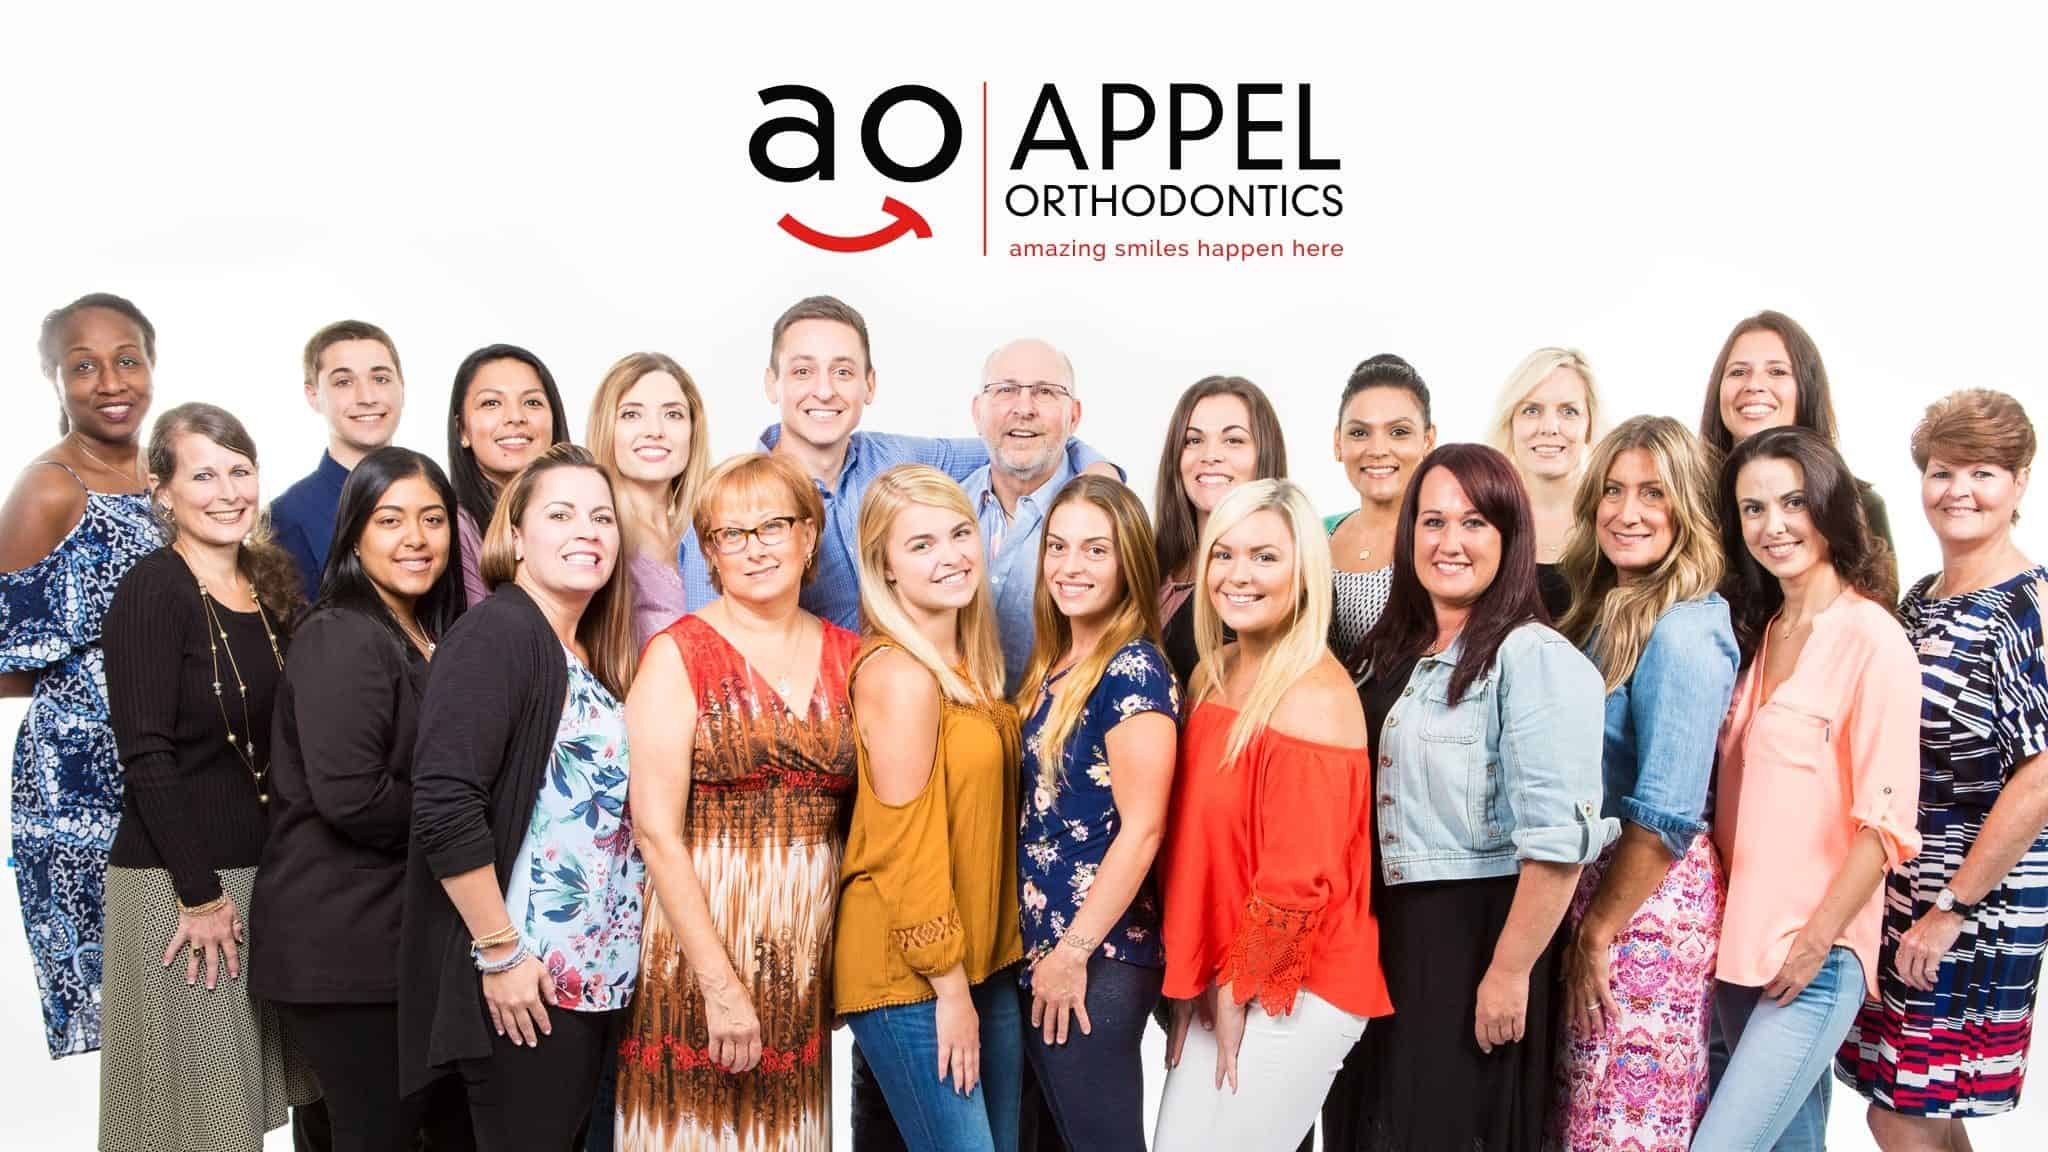 Appel Staff Normal REDO w logo 1 2048x1152 - Meet the Appel Orthodontics Team